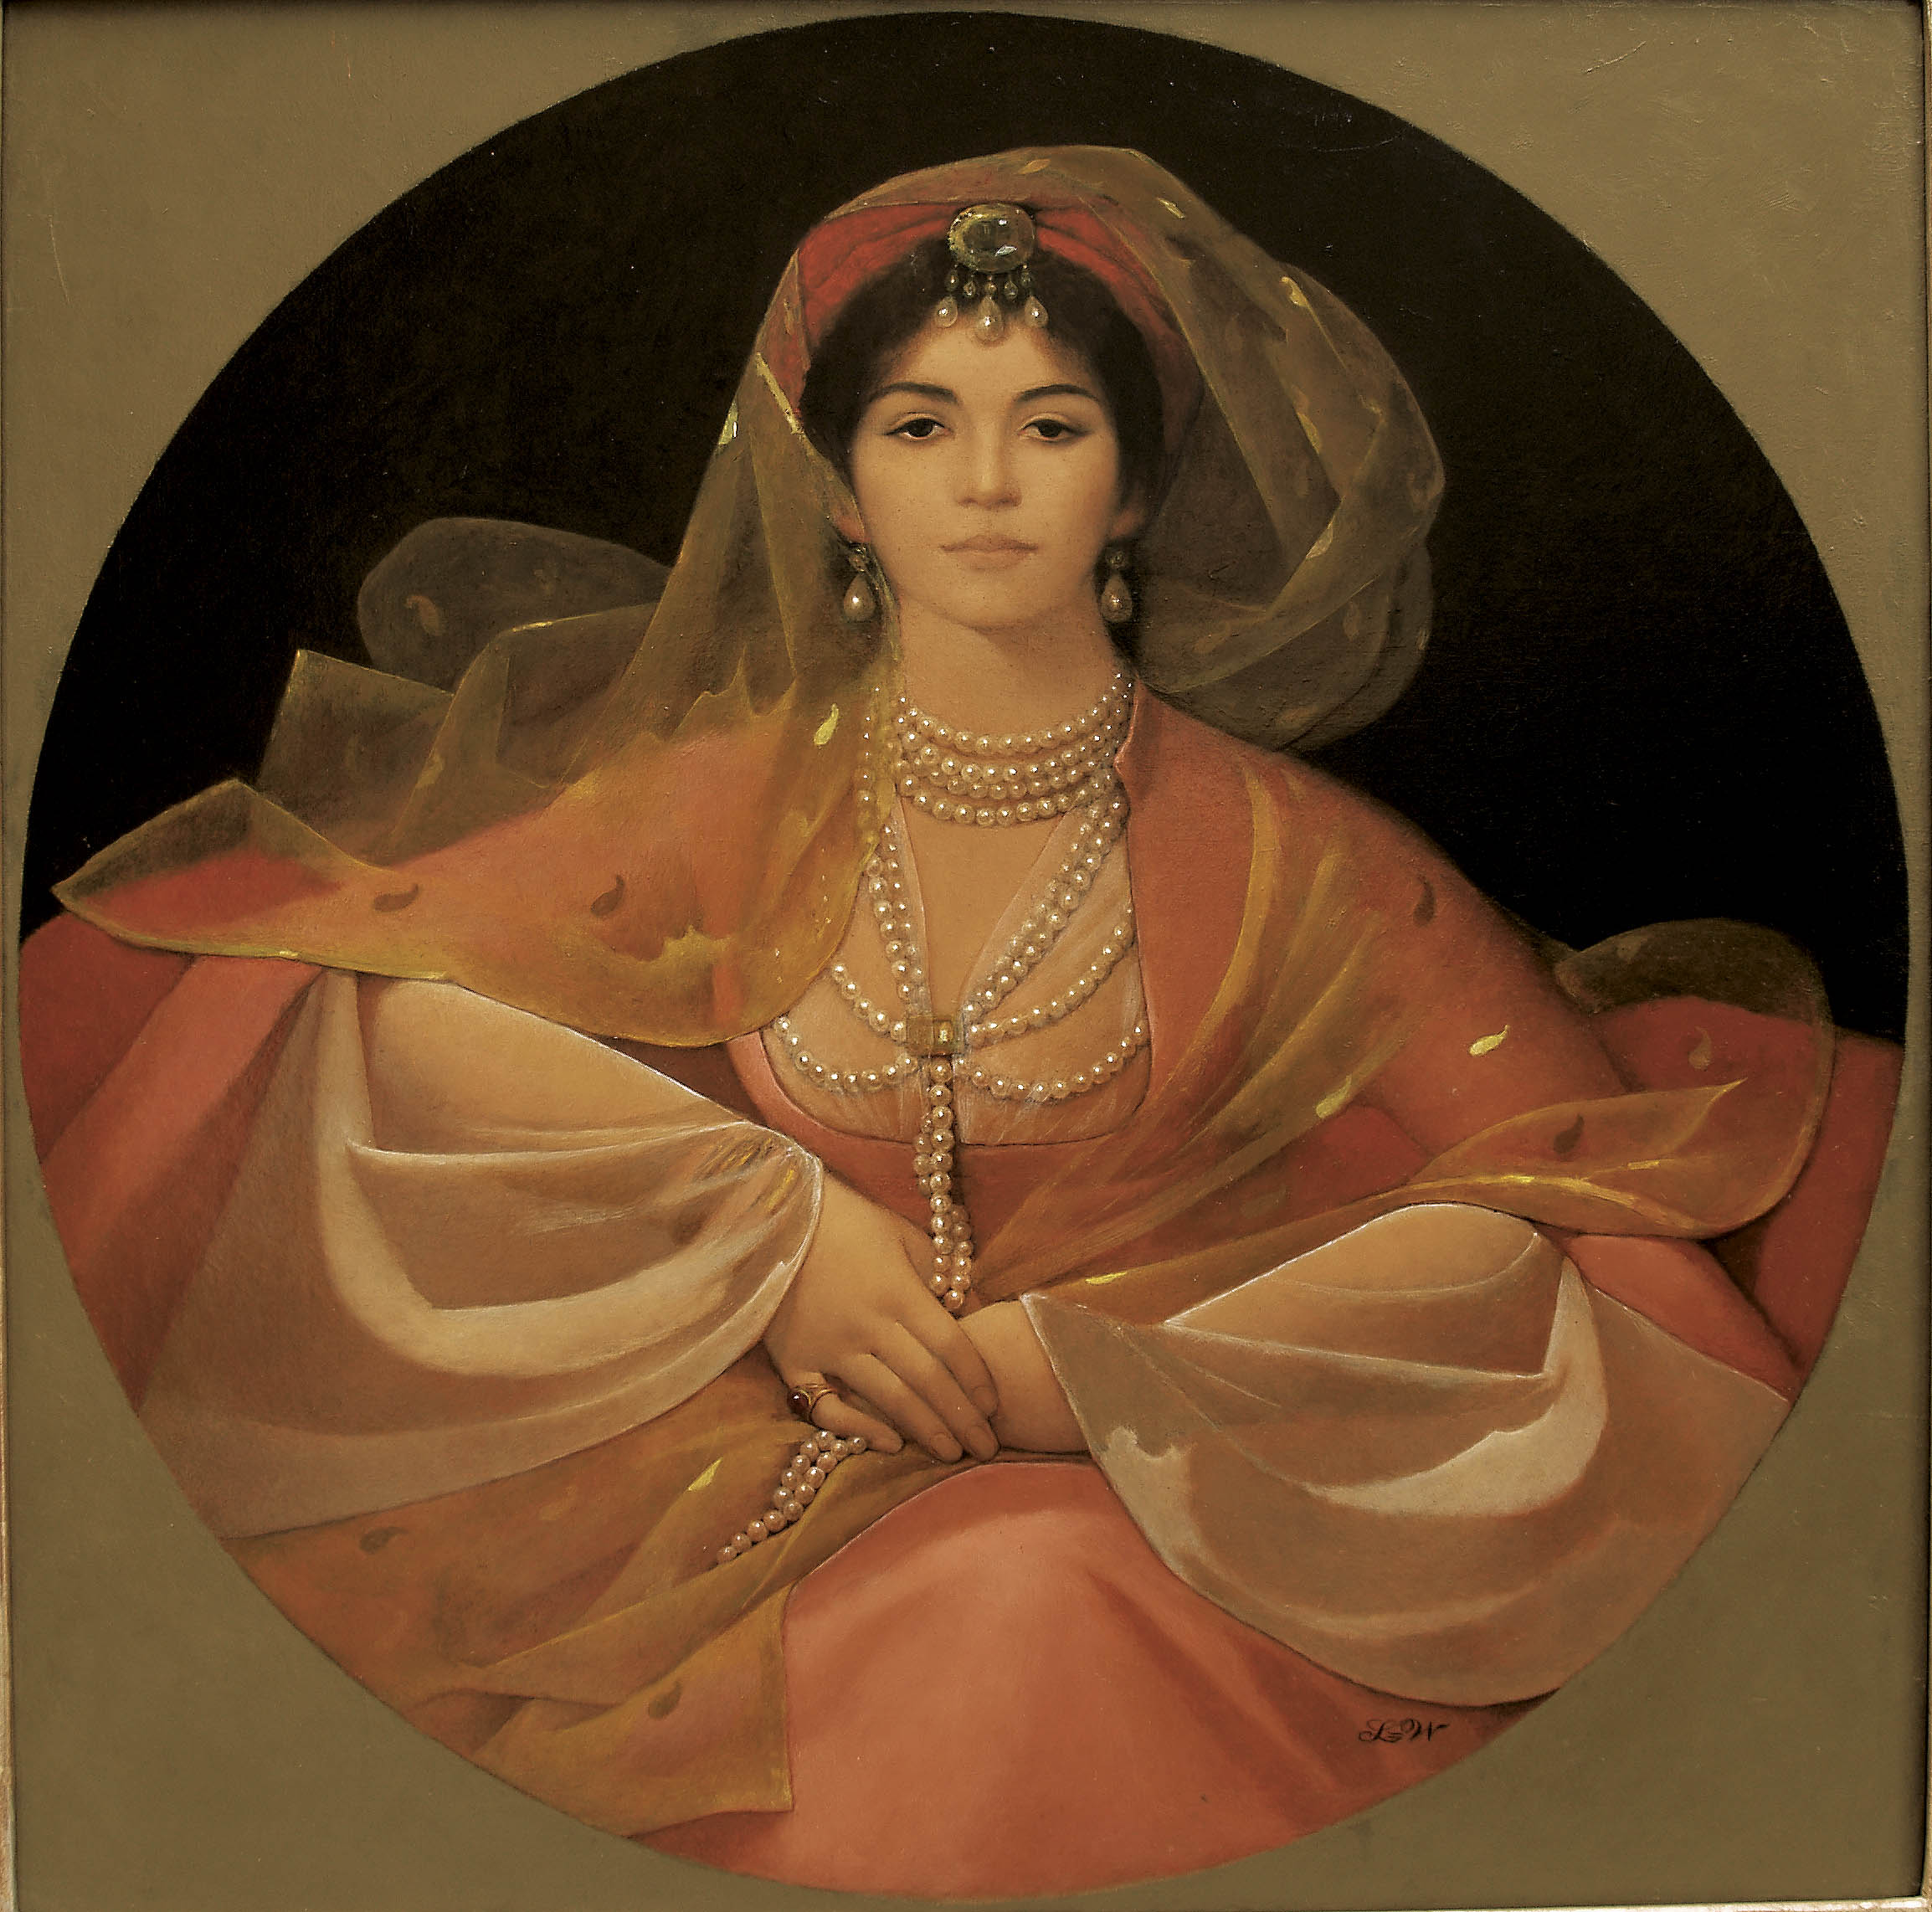 Portrait of a Ghazeeyah copy - LW Portrait Print of Aisha Ali as a 19th Century Ghazeeyah